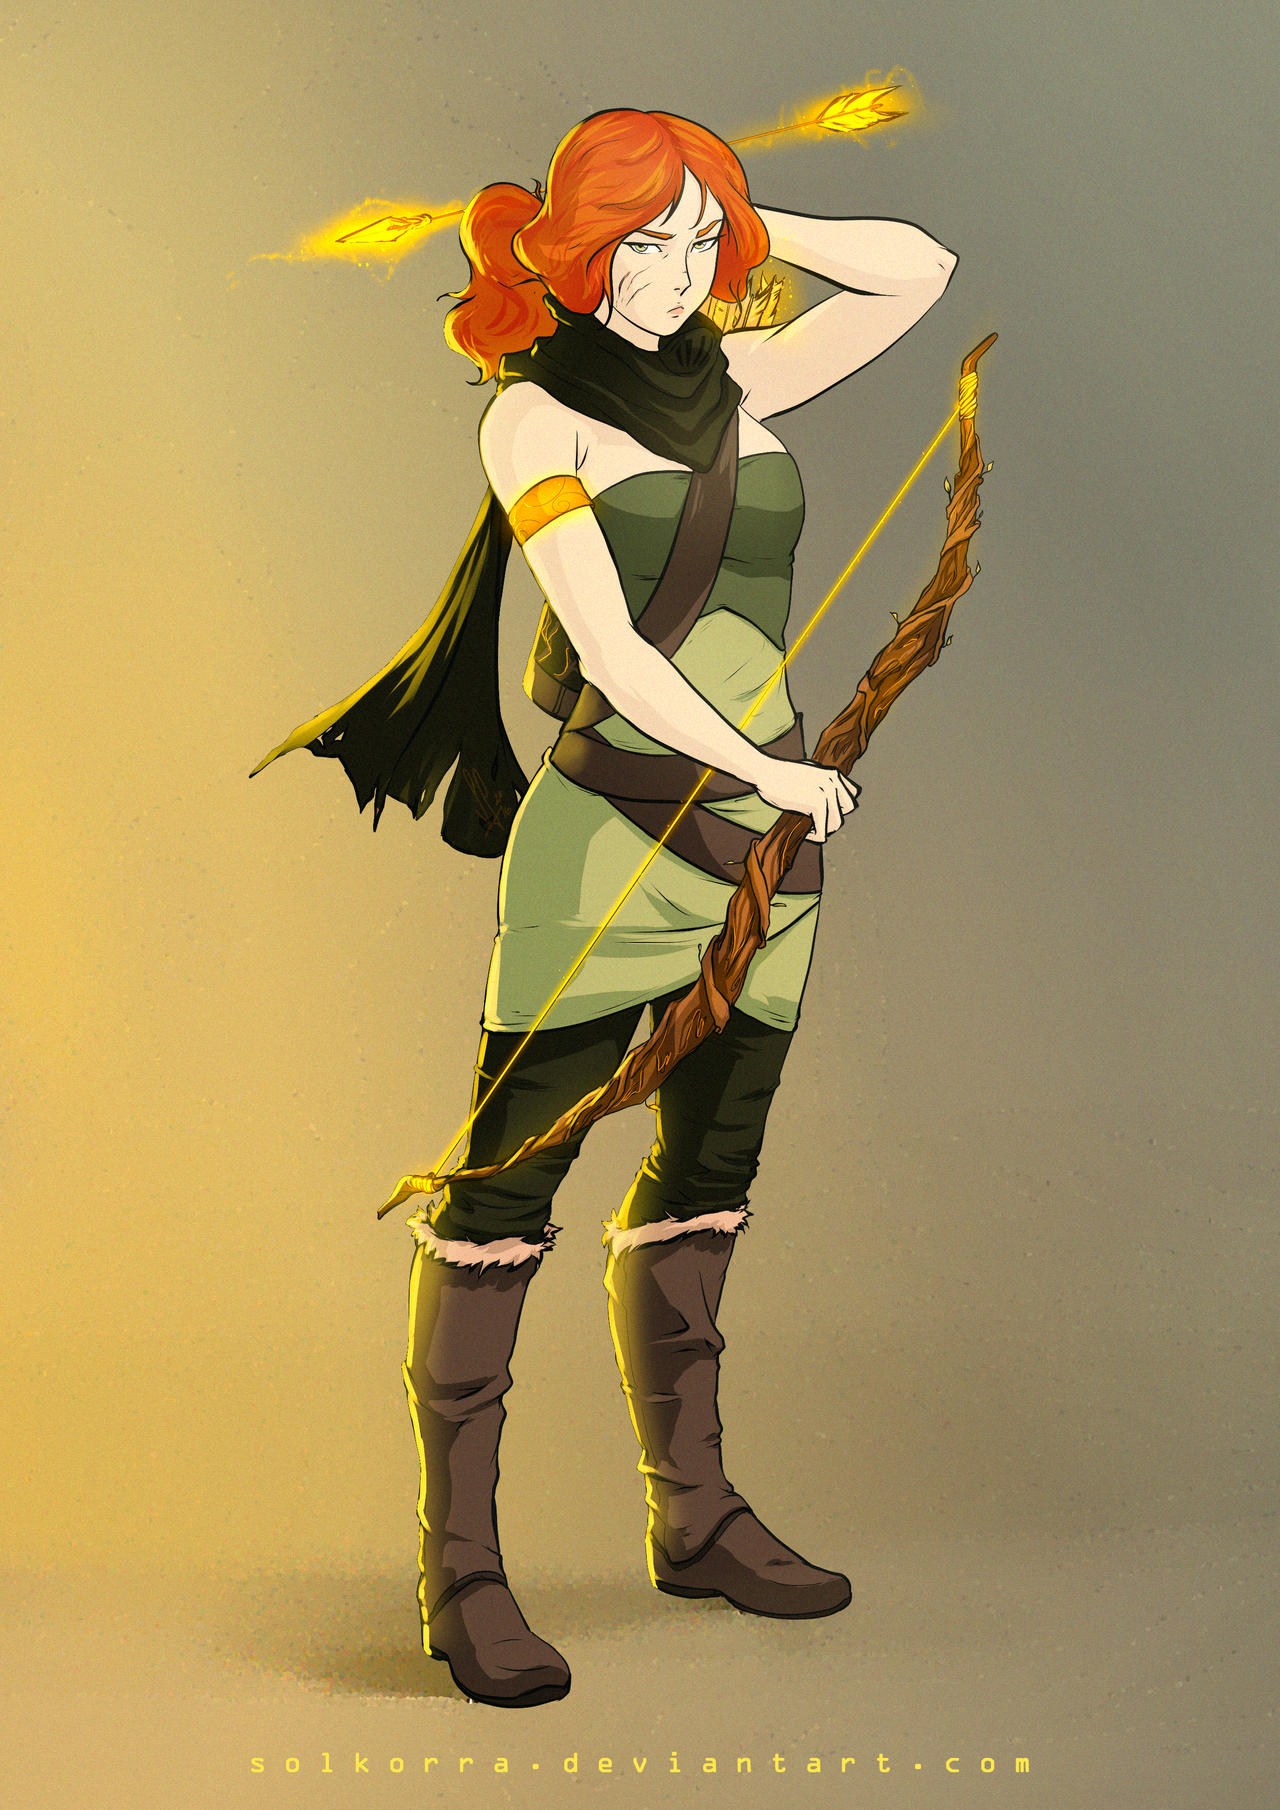 magical_warrior_girl__the_arrow_by_solkorra-d9x1vu4.jpg